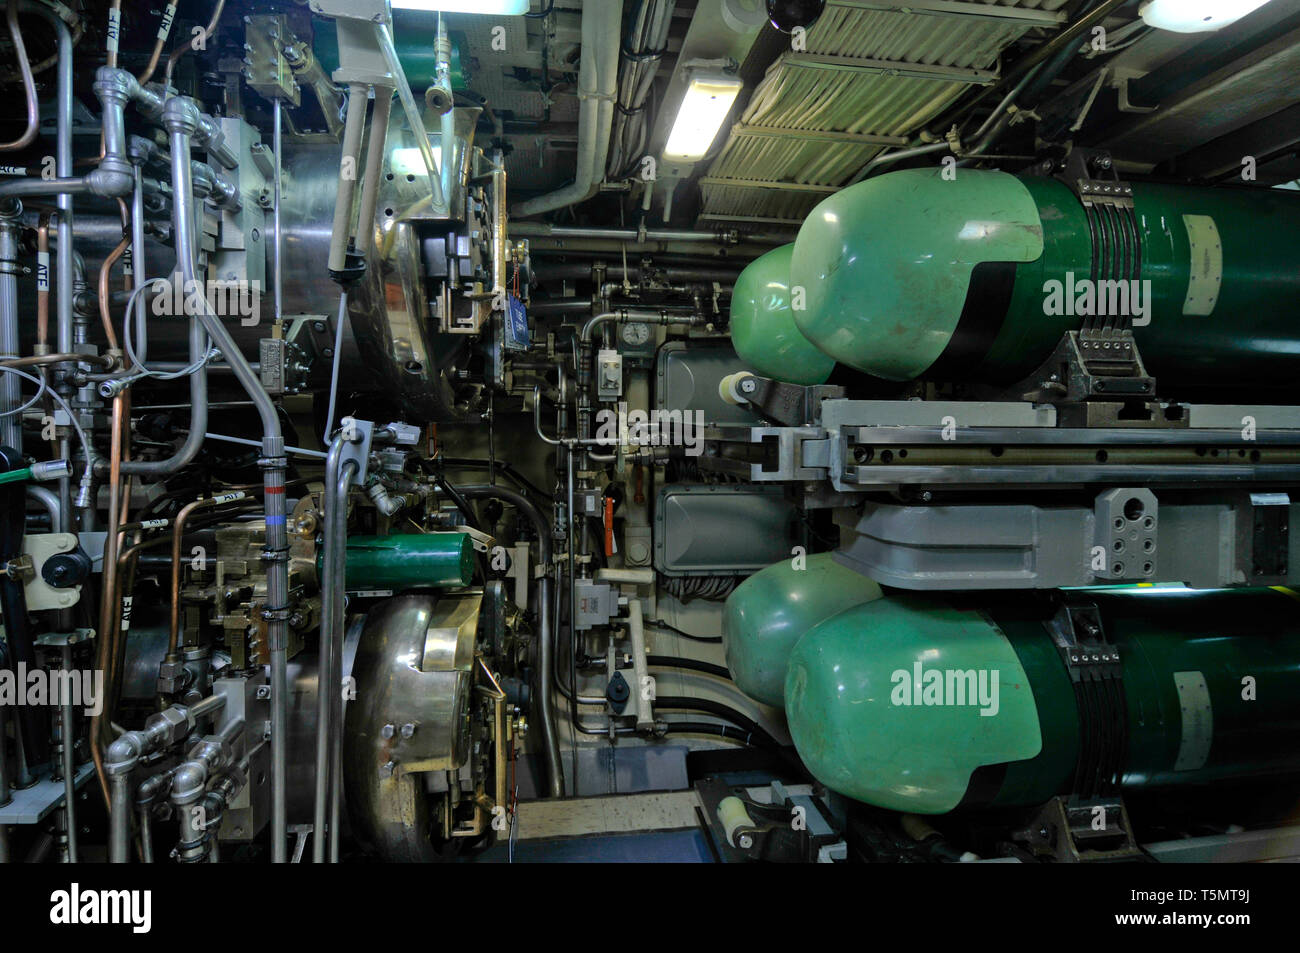 The torpedo room, with Mk 48 ADCAP torpedoes, on the nuclear-powered fleet ballistic missile submarine USS Ohio (SSBN-726/SSGN-726). - Stock Image